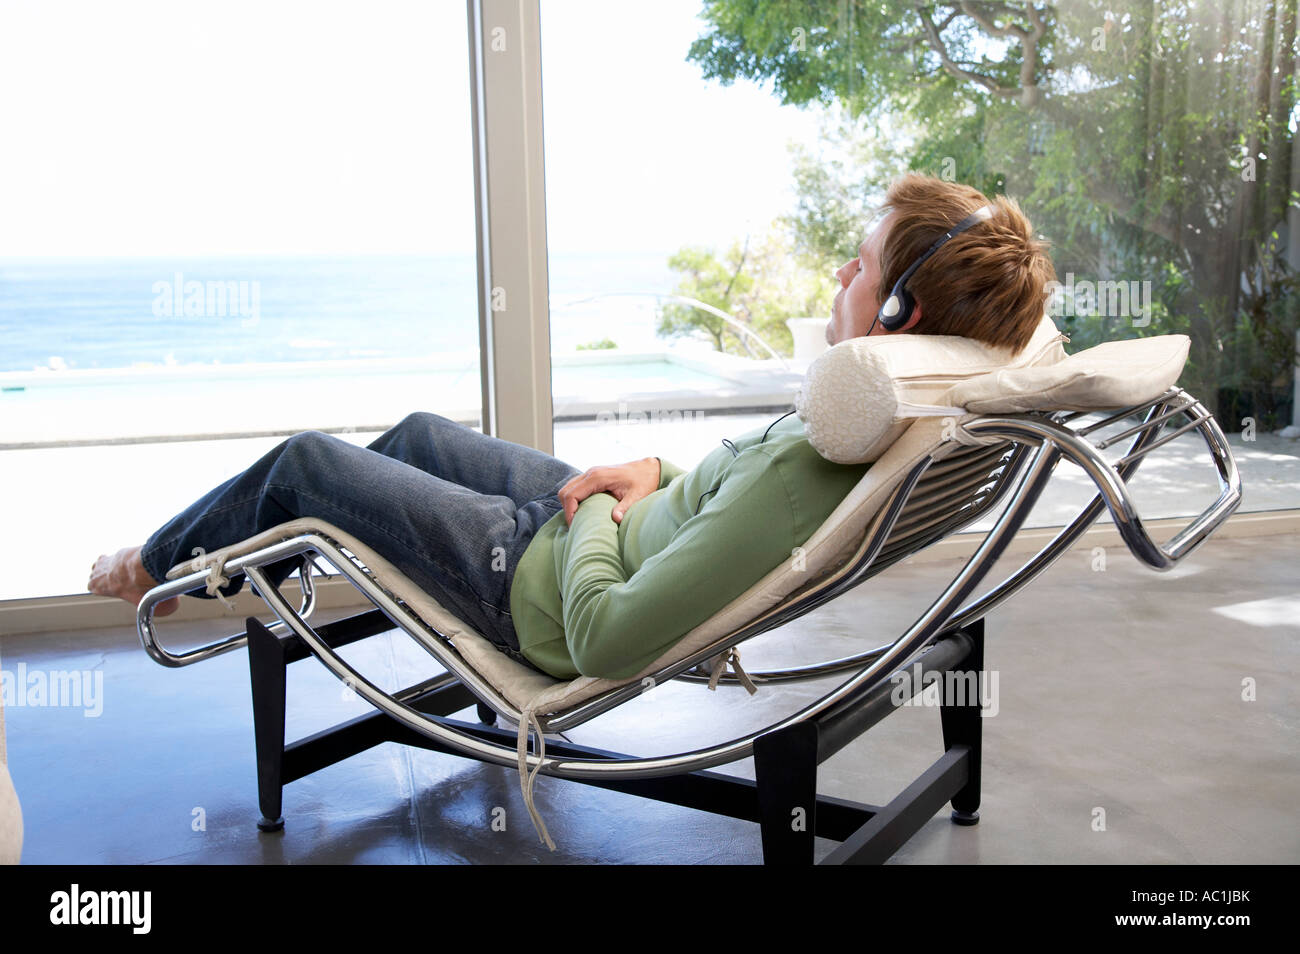 Man wearingbheadphones, relaxing - Stock Image